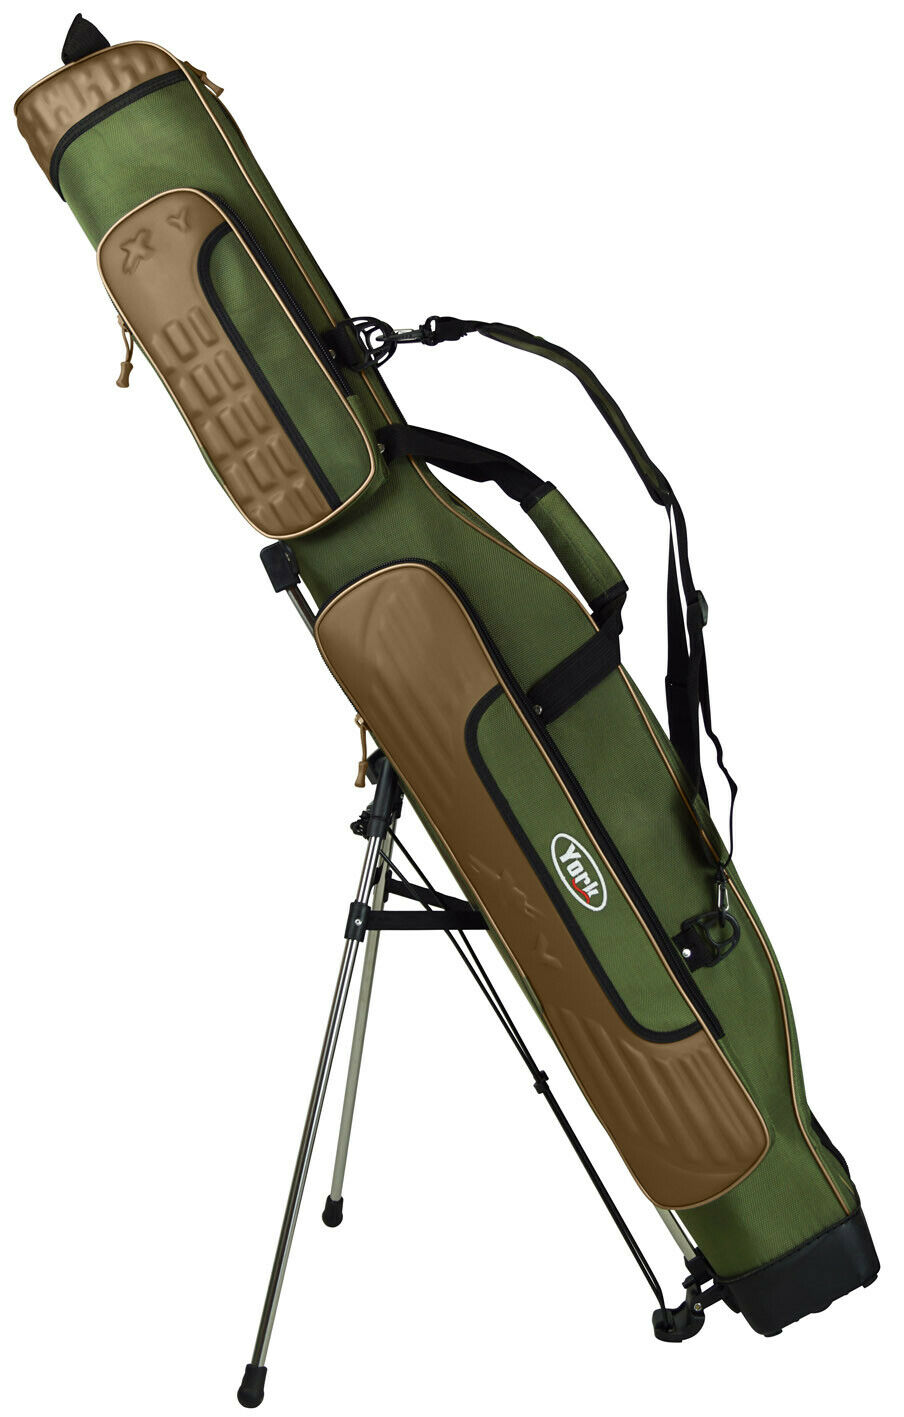 Rod Case York Exclusive 3 compartSiets EXREMELY Rod Tasche Case 135-160cm